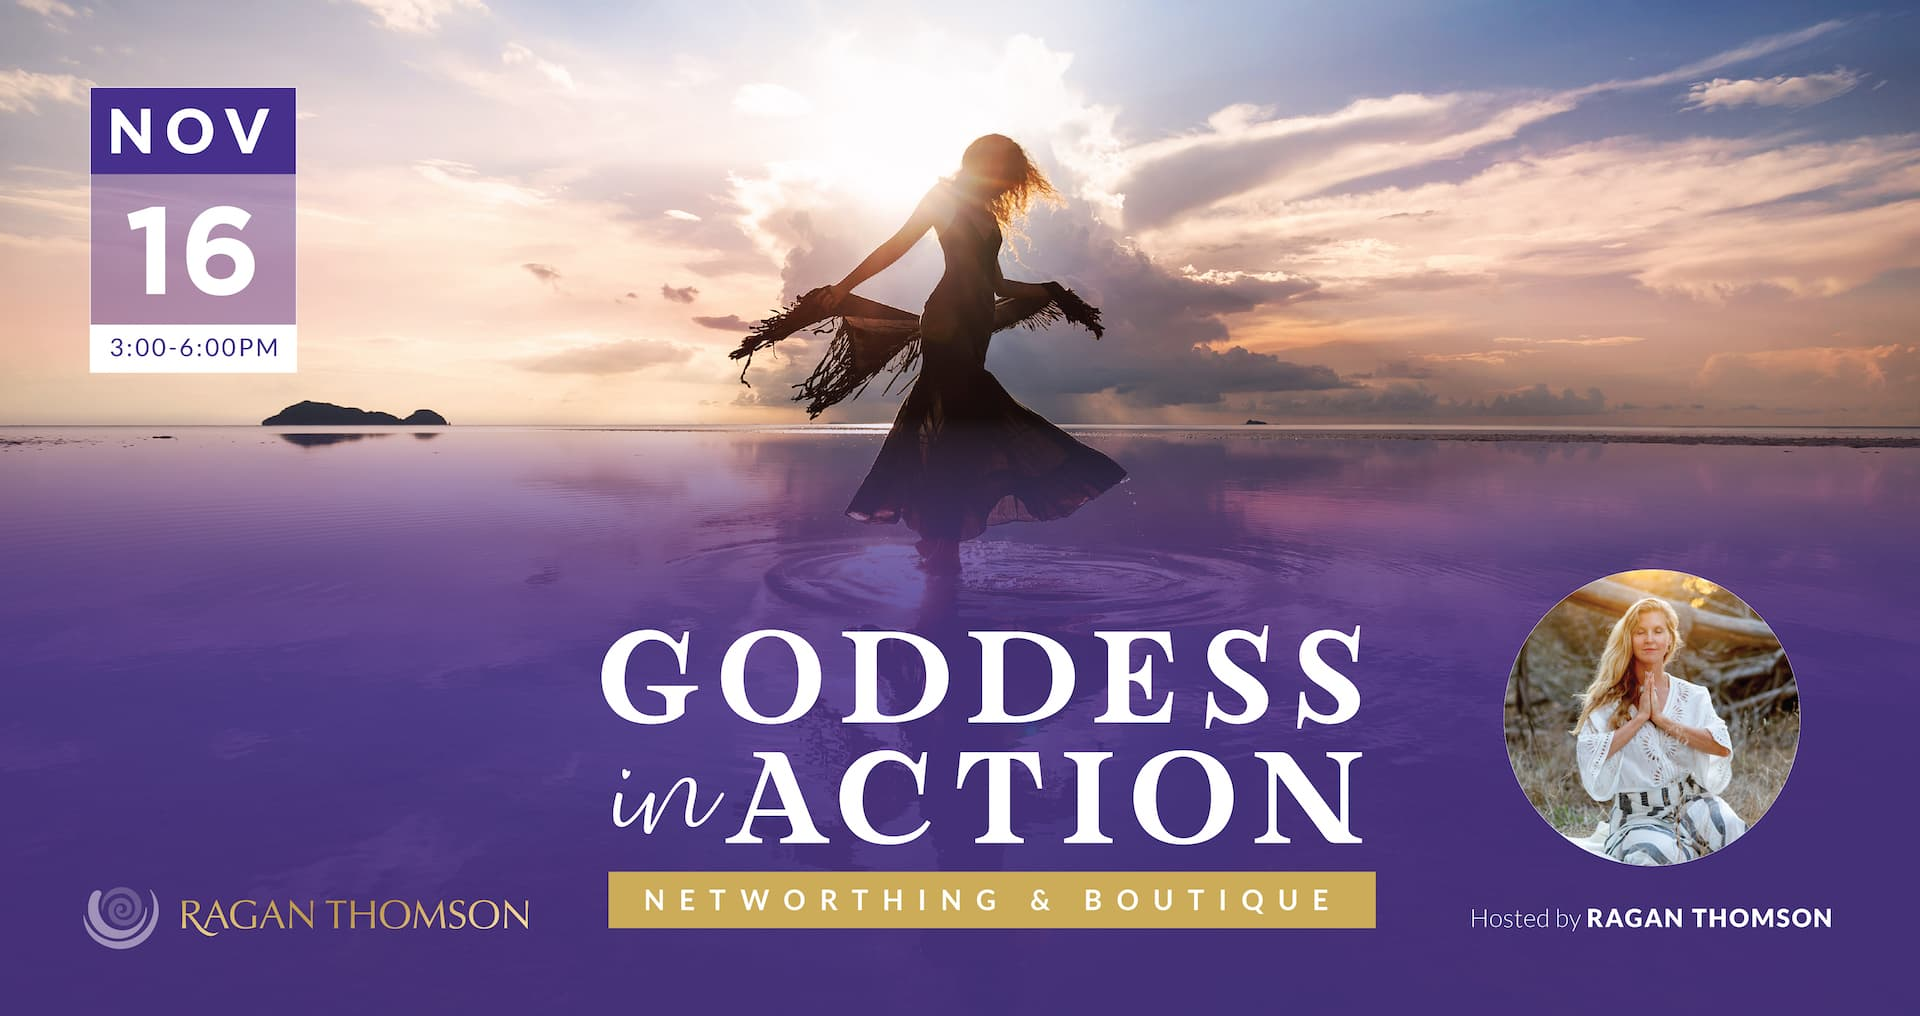 Goddess in Action: Networthing & Boutique